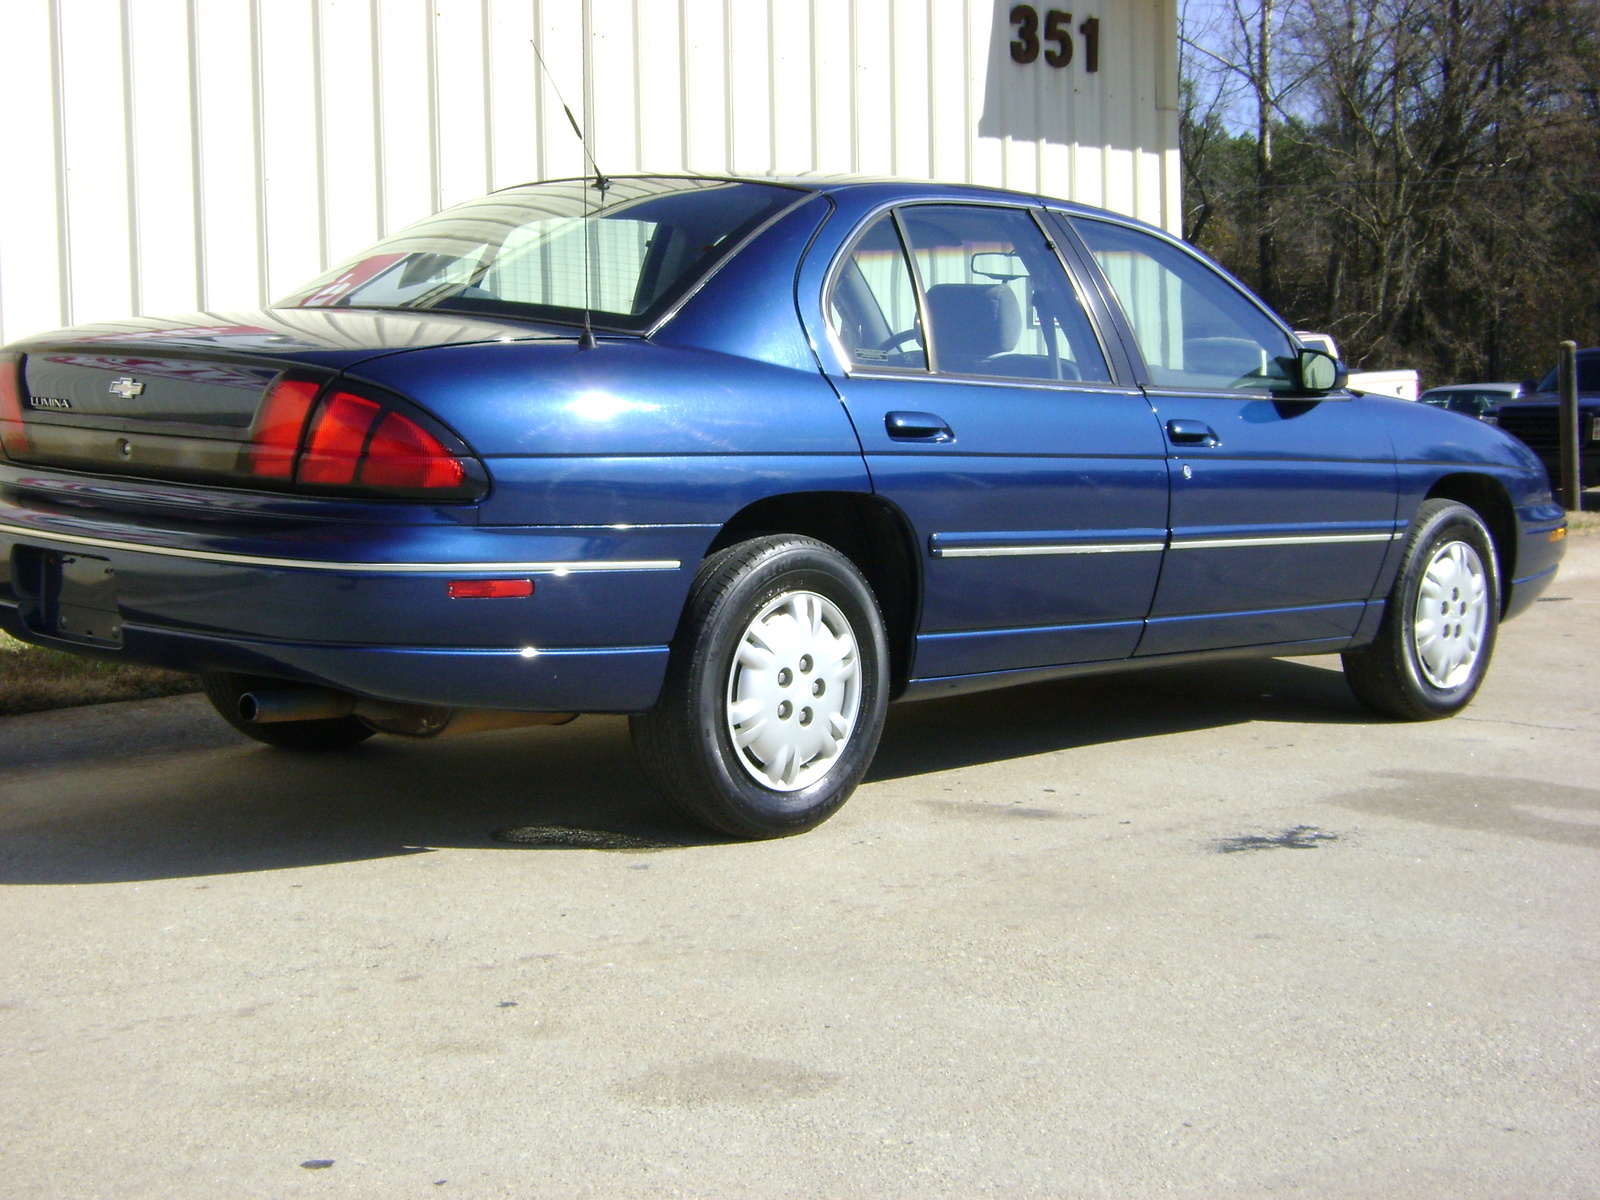 Picture of 1996 Chevrolet Lumina 4 Dr LS Sedan